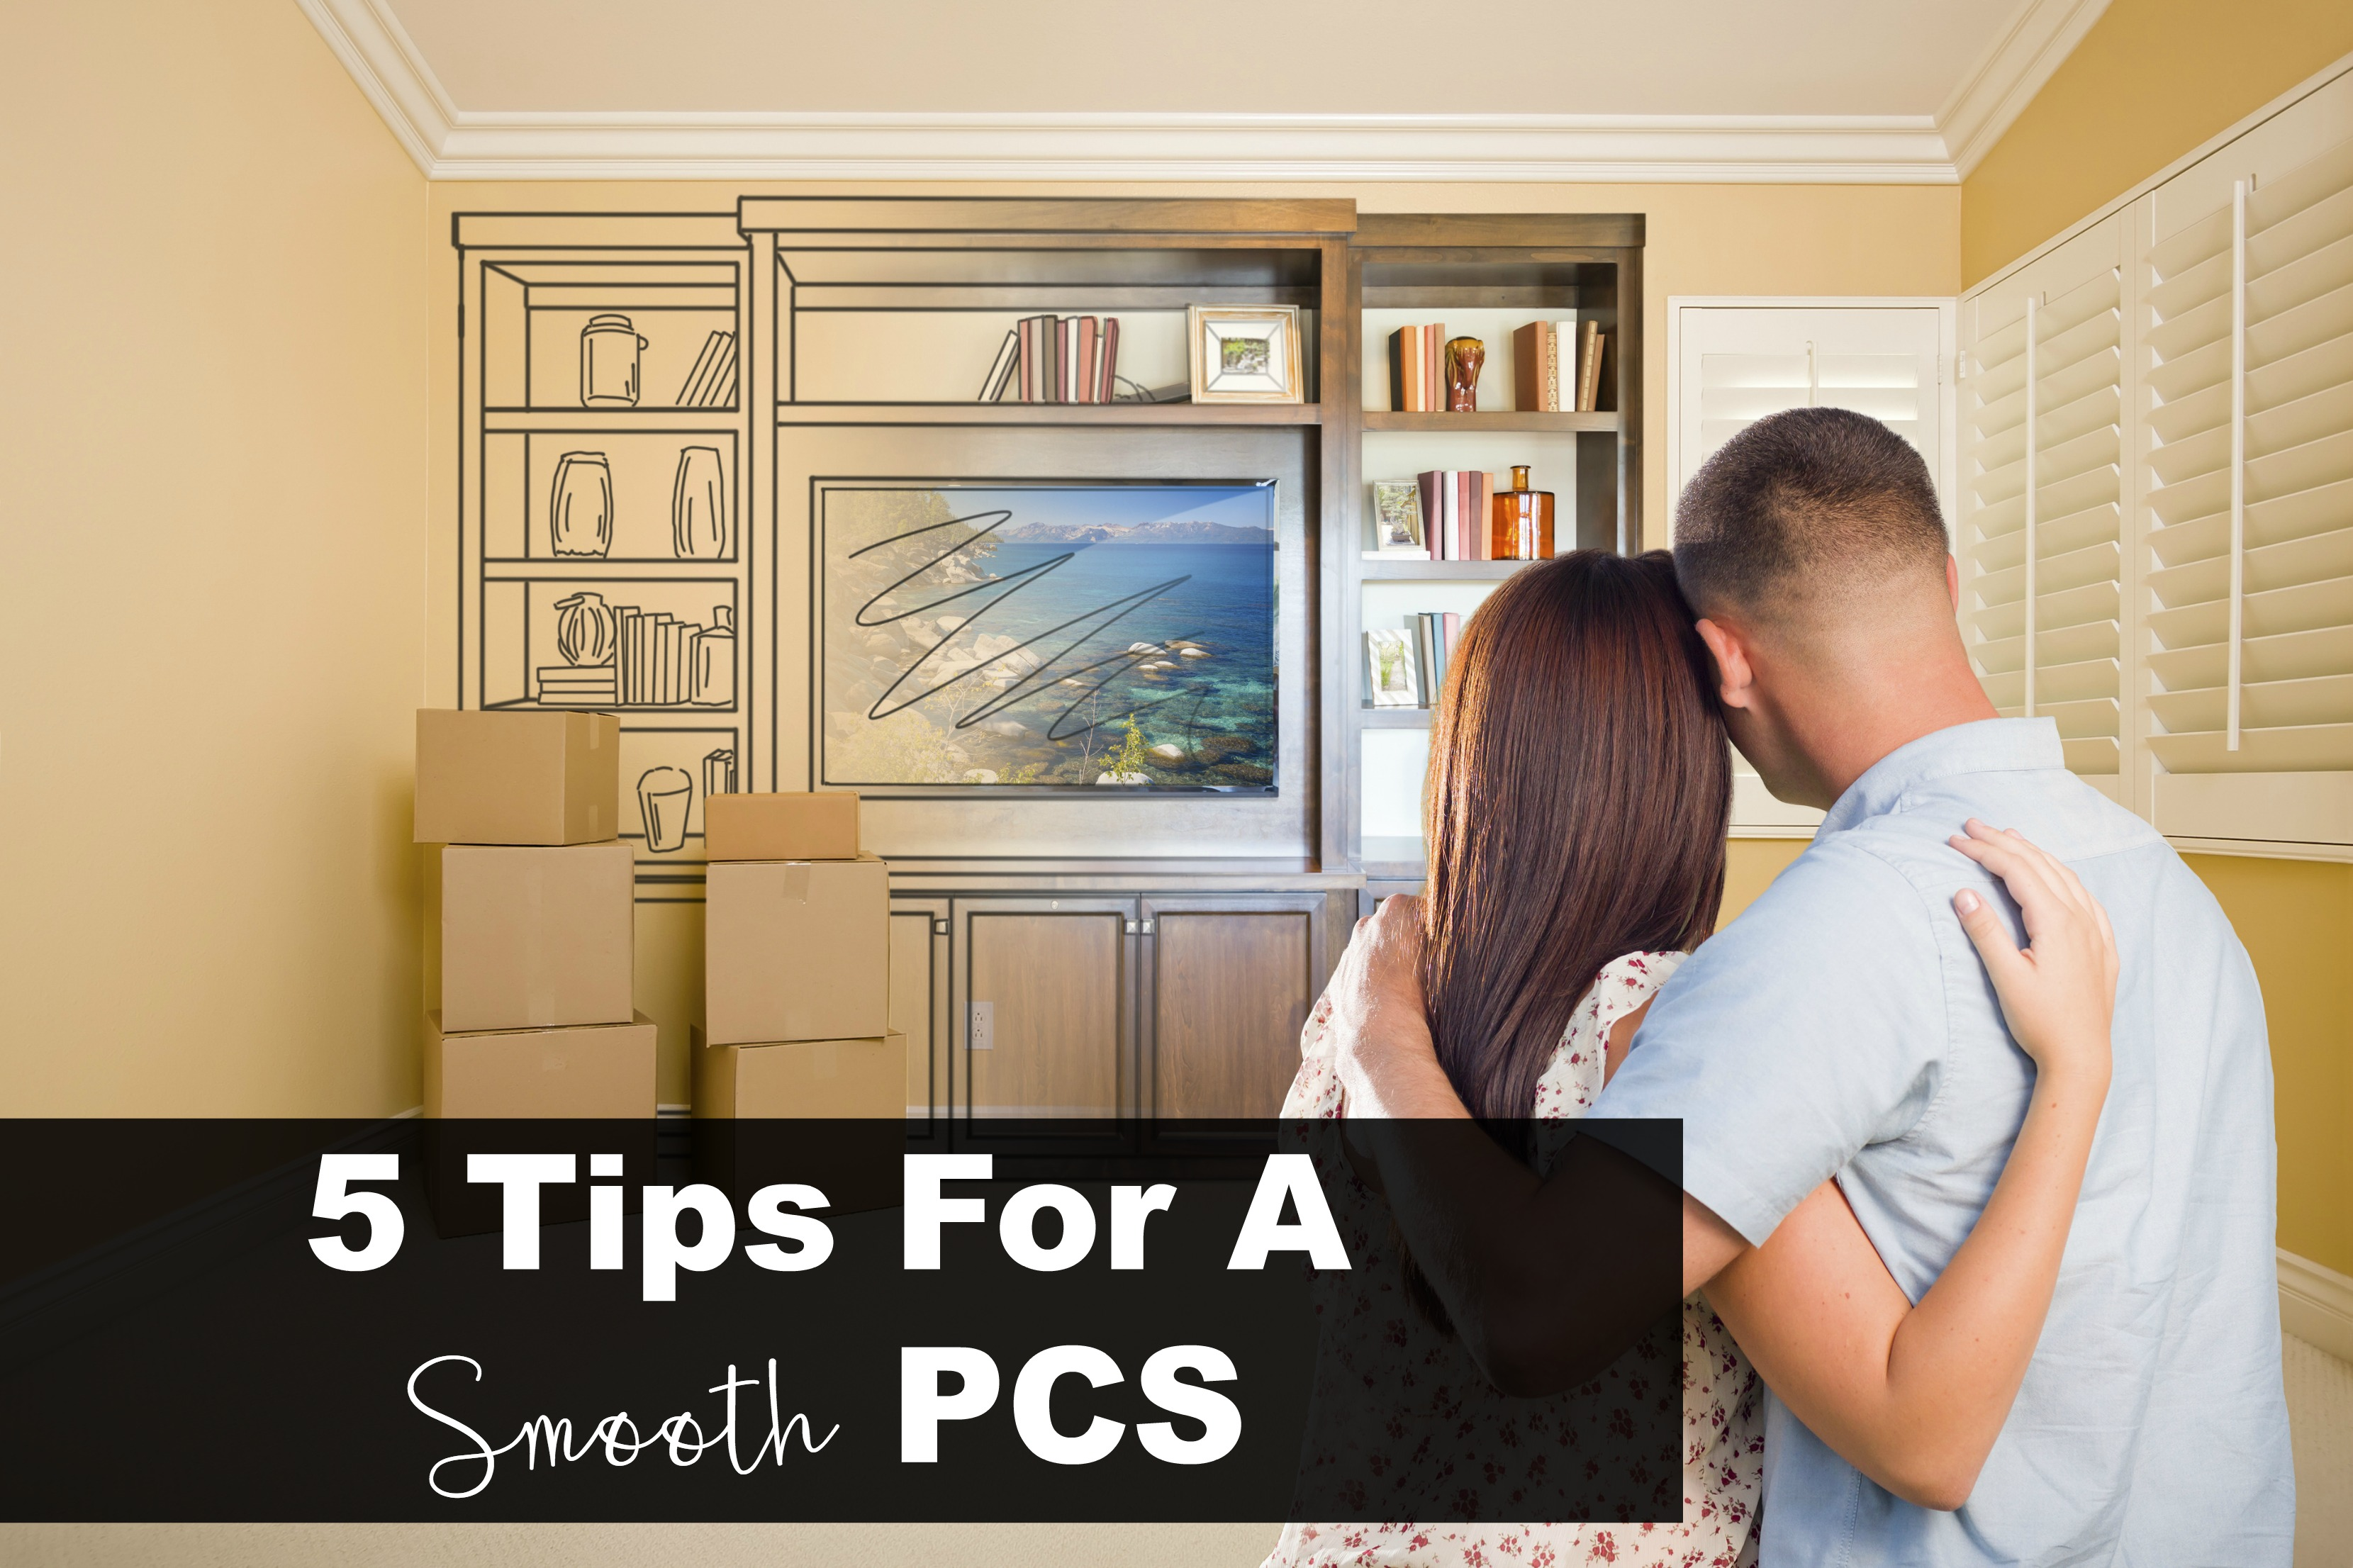 Want Your PCS to Run Smoothly? Follow These 5 Tips.